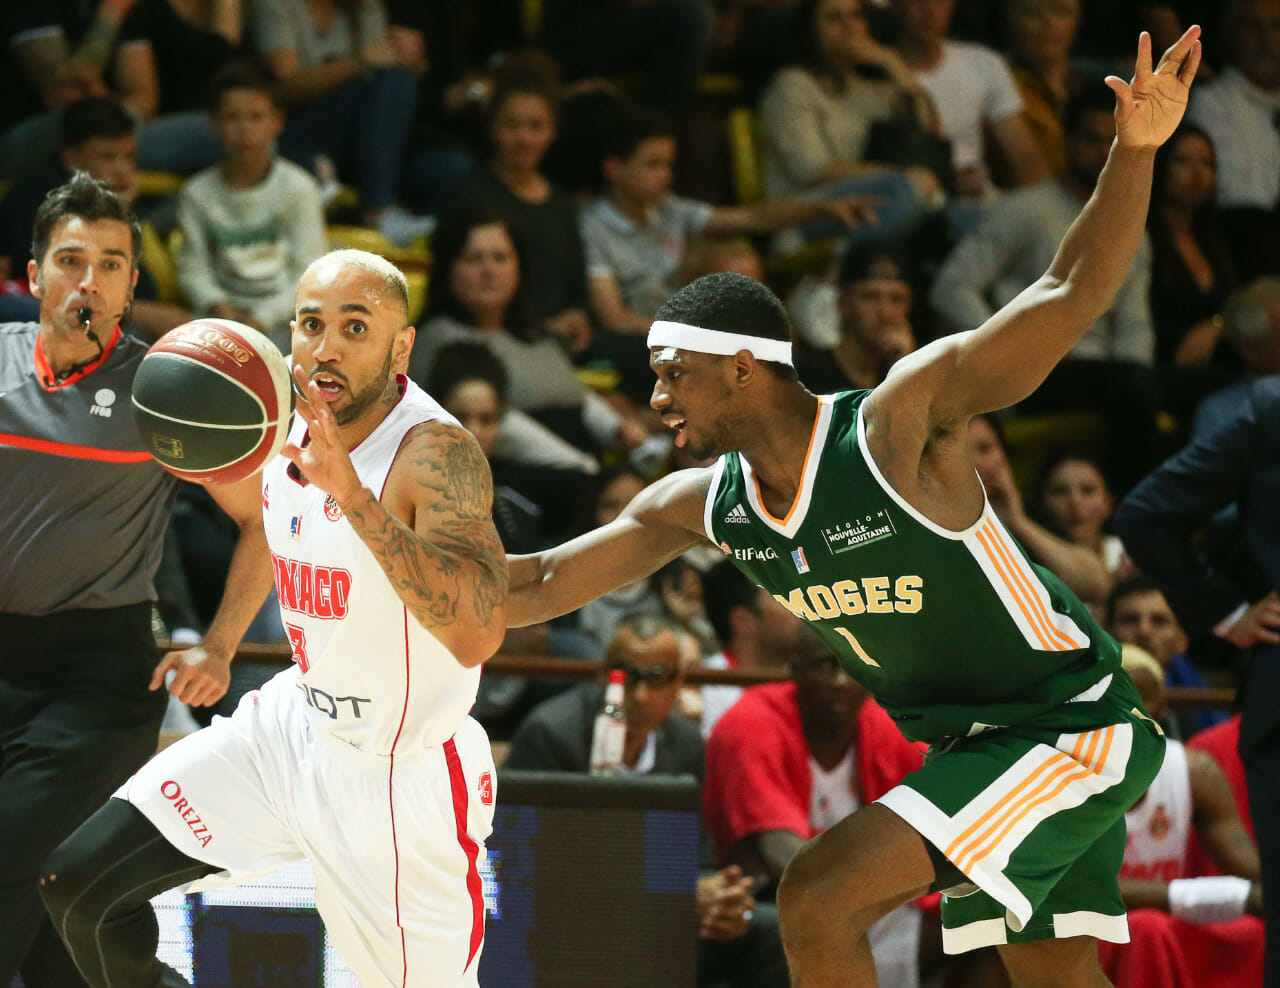 Photo of Roca Team claims victory against Limoges and goes to the semi-final